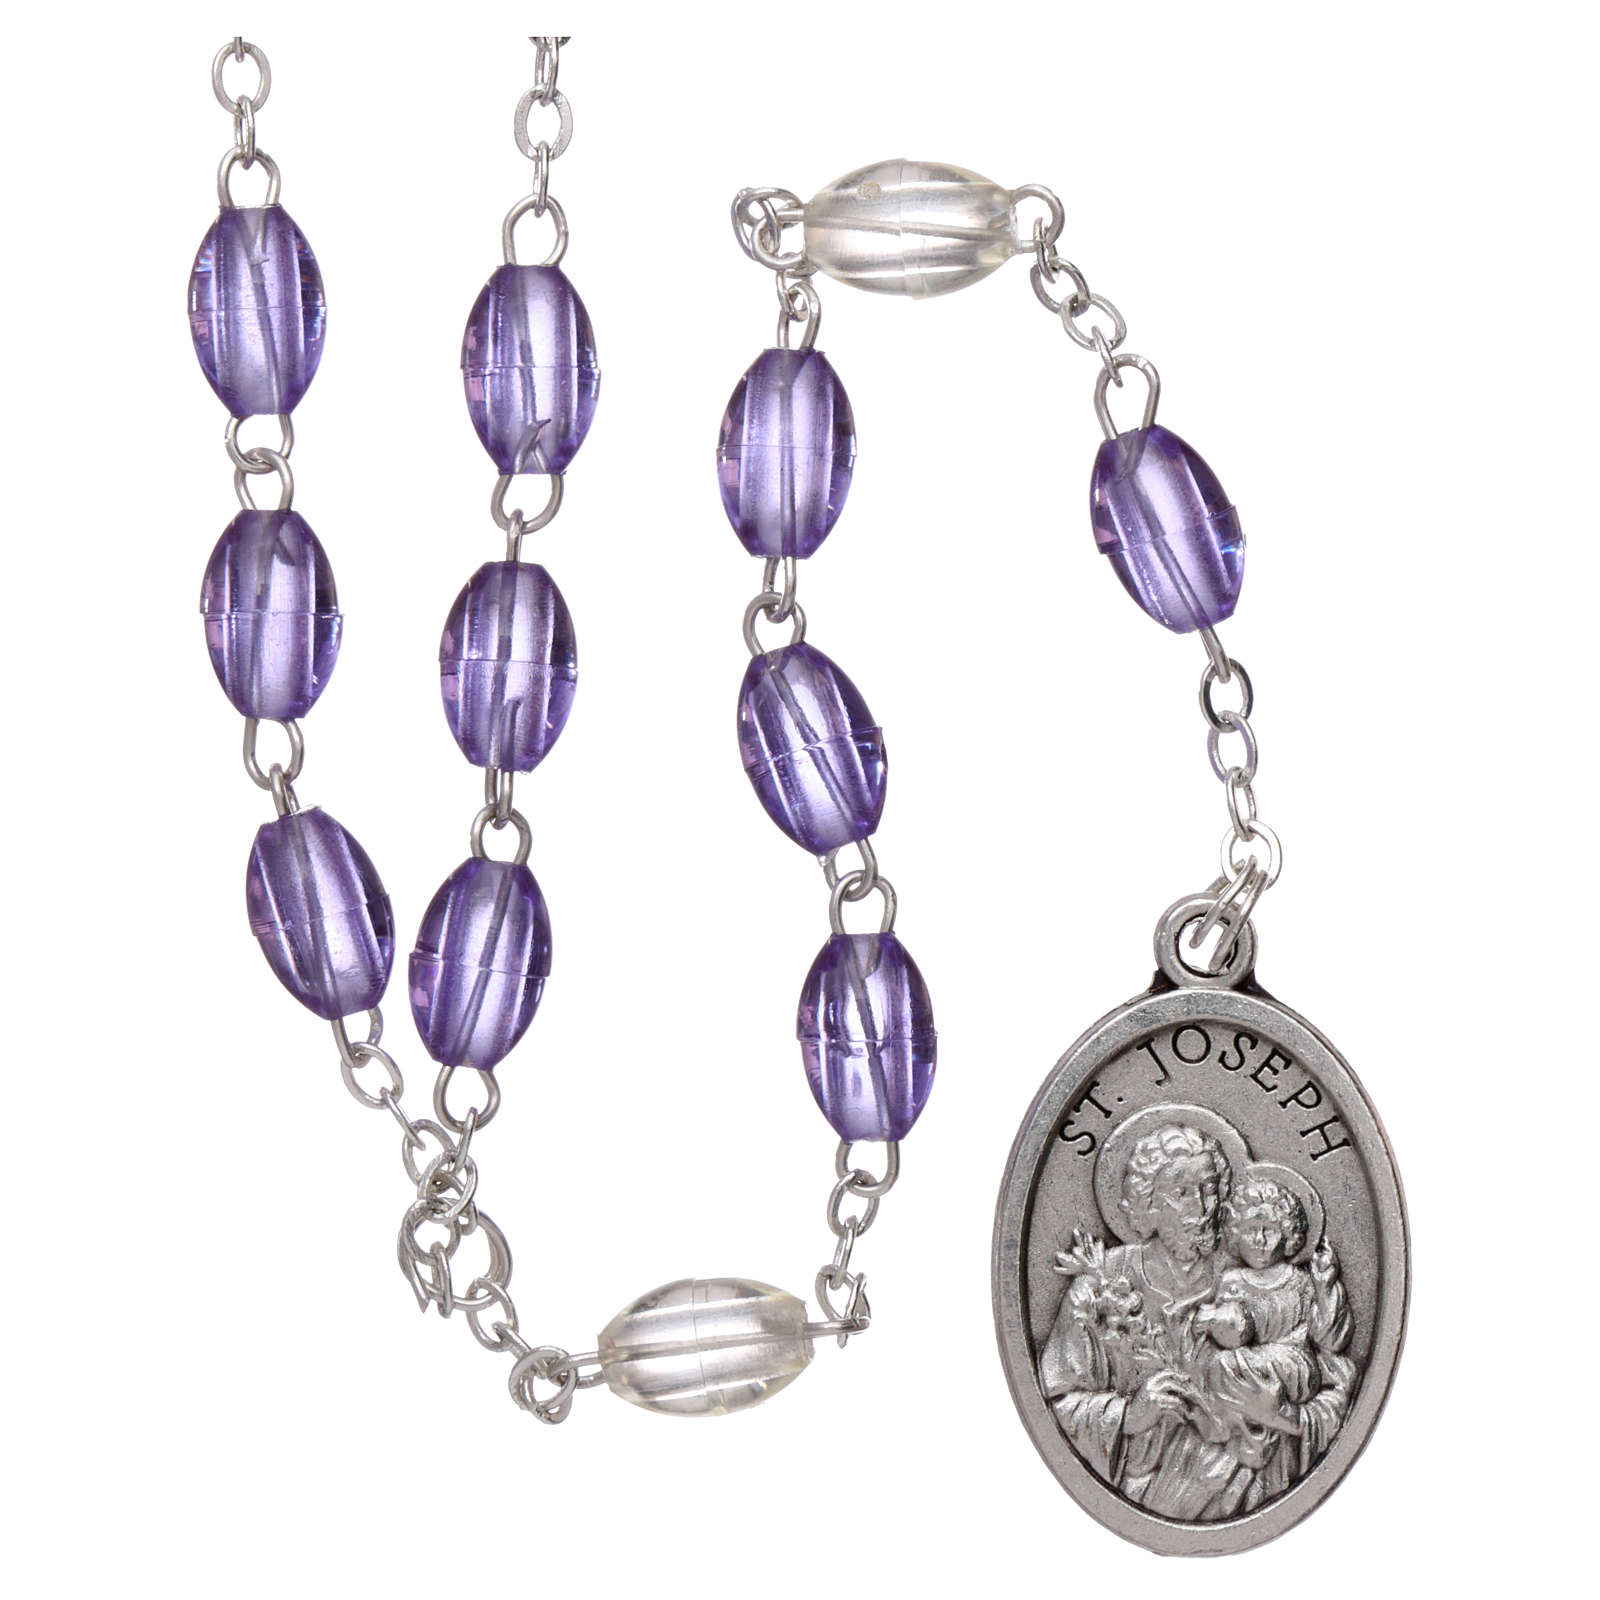 Rosary in plastic 5x3 mm purple grains, Saint Joseph 4